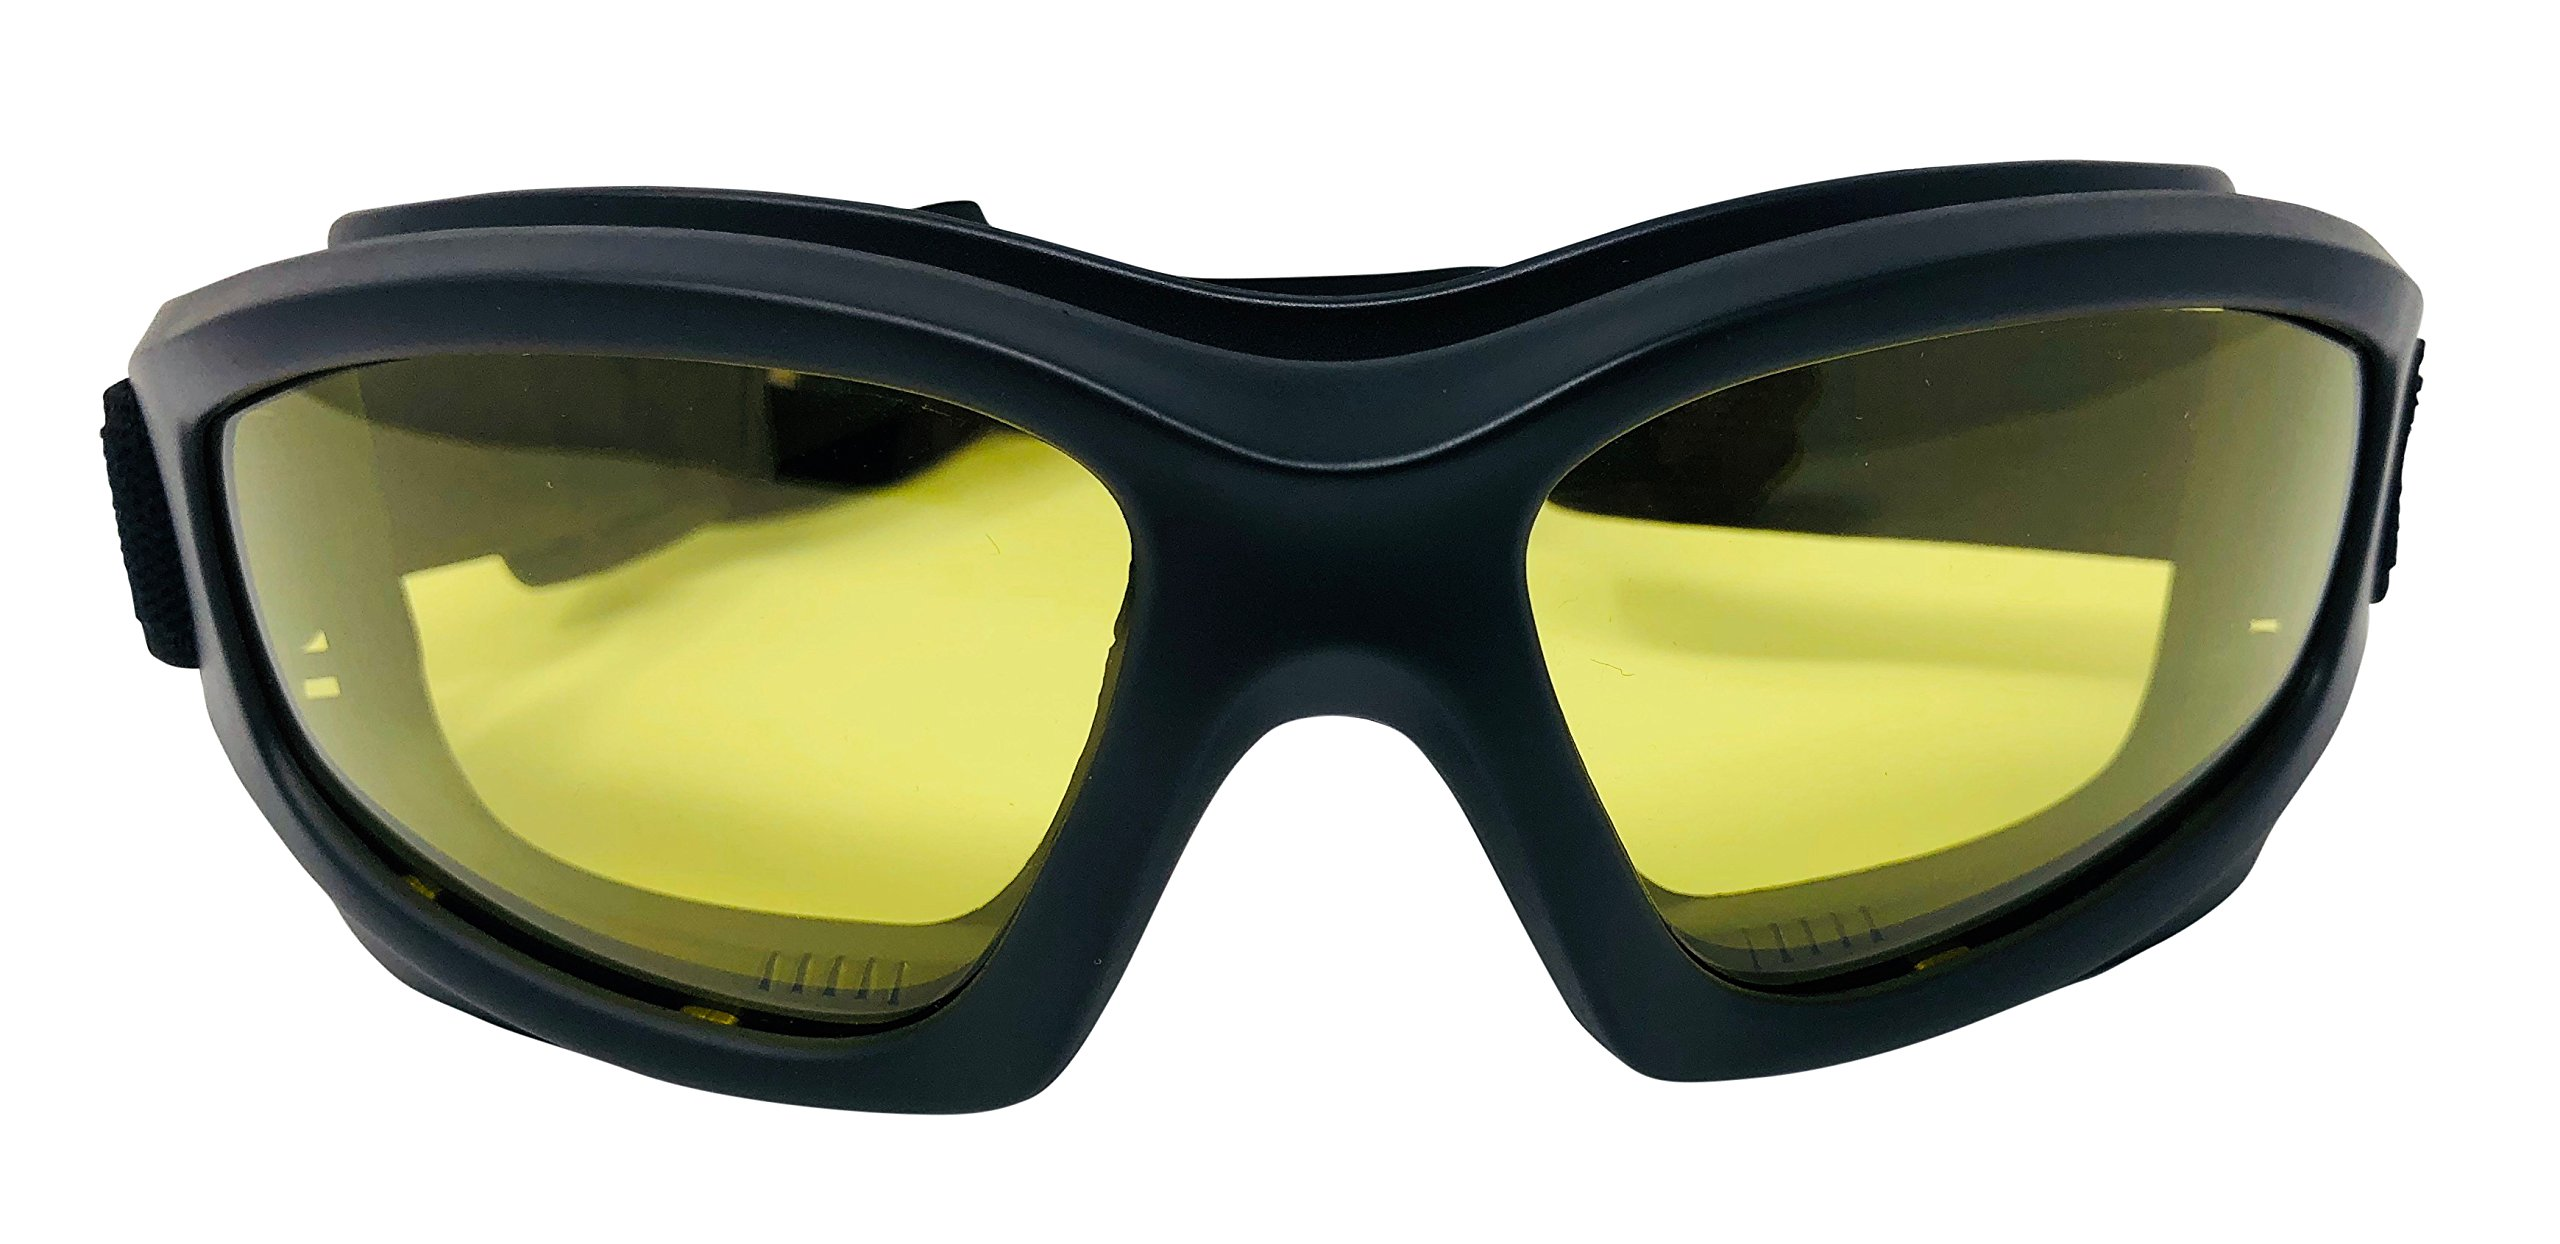 Night Vision Nighttime Riding GogglesNo Foam Design w//Hard Case Microfiber Cleaning Cloth /& Pouch Included Yellow Motorcycle Riding Goggles Yellow Lens